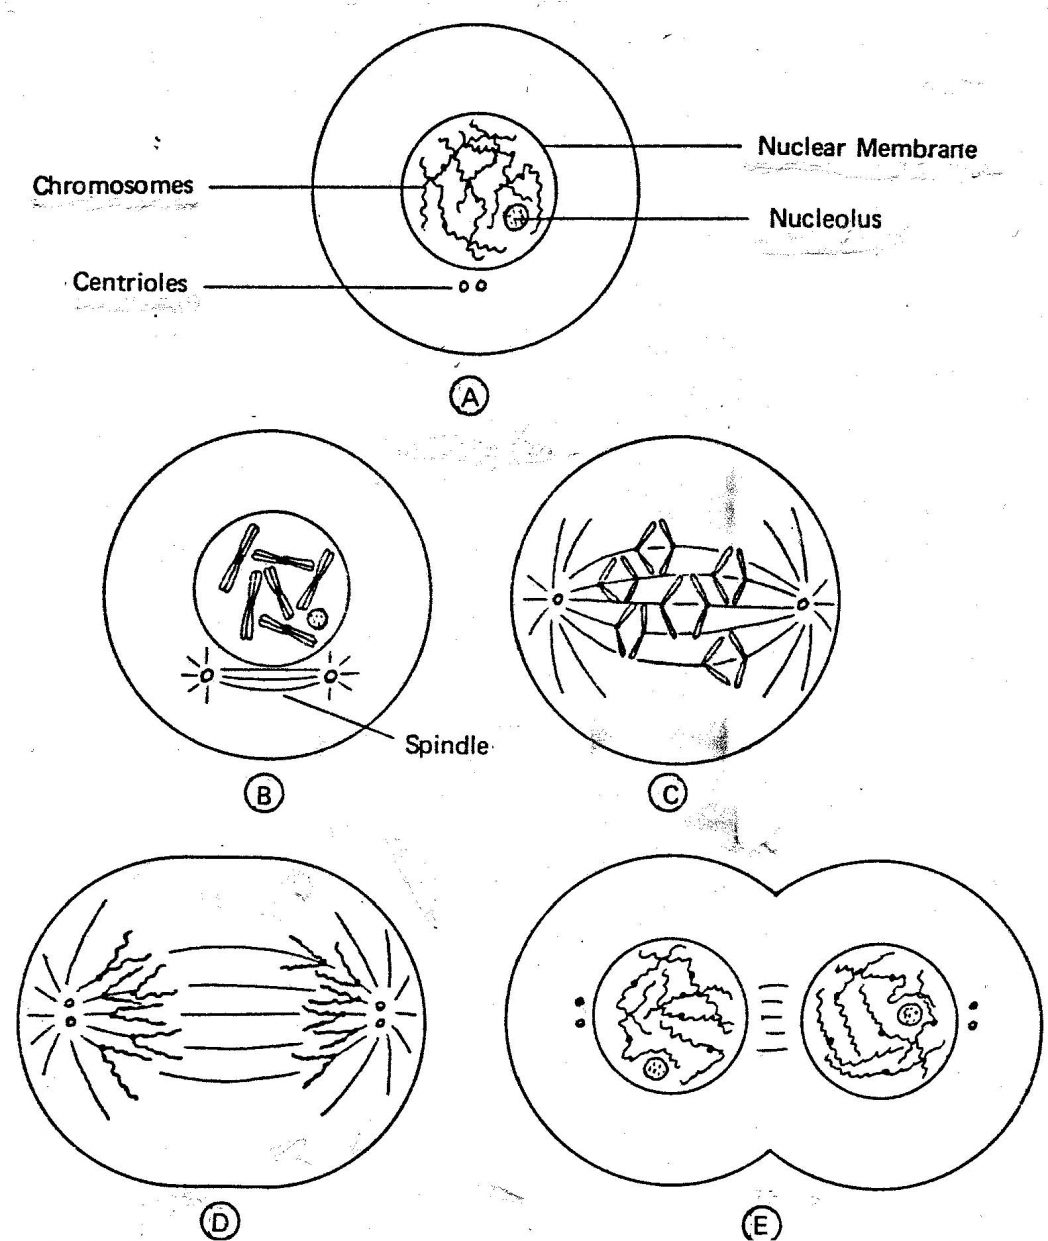 venn diagrams worksheets with answers additionally mitosis vs meiosis worksheets answer key – trungcollection furthermore Mitosis and Meiosis Worksheet Answer Key Unique Mitosis Vs Meiosis in addition Mitosis vs Meiosis Chart likewise Mitosis Worksheet   cmediadrivers furthermore Mitosis Vs Meiosis Venn Diagram 2   Wiring Diagram Database also pare Mitosis and Meiosis Lesson Plans   Worksheets as well 15 Best Images of Meiosis Stages Worksheet Answers   Best Worksheet further 16 Best Images of Steps Of Meiosis Worksheet Answers Meiosis Stages likewise Cytokinesis Drawing at GetDrawings     Free for personal use likewise mitosis coloring homework – psubarstool besides Meiosis Worksheet Answers as well  as well 16 Best Images of Meiosis Practice Worksheet   Meiosis and Mitosis further  likewise . on mitosis versus meiosis worksheet answers